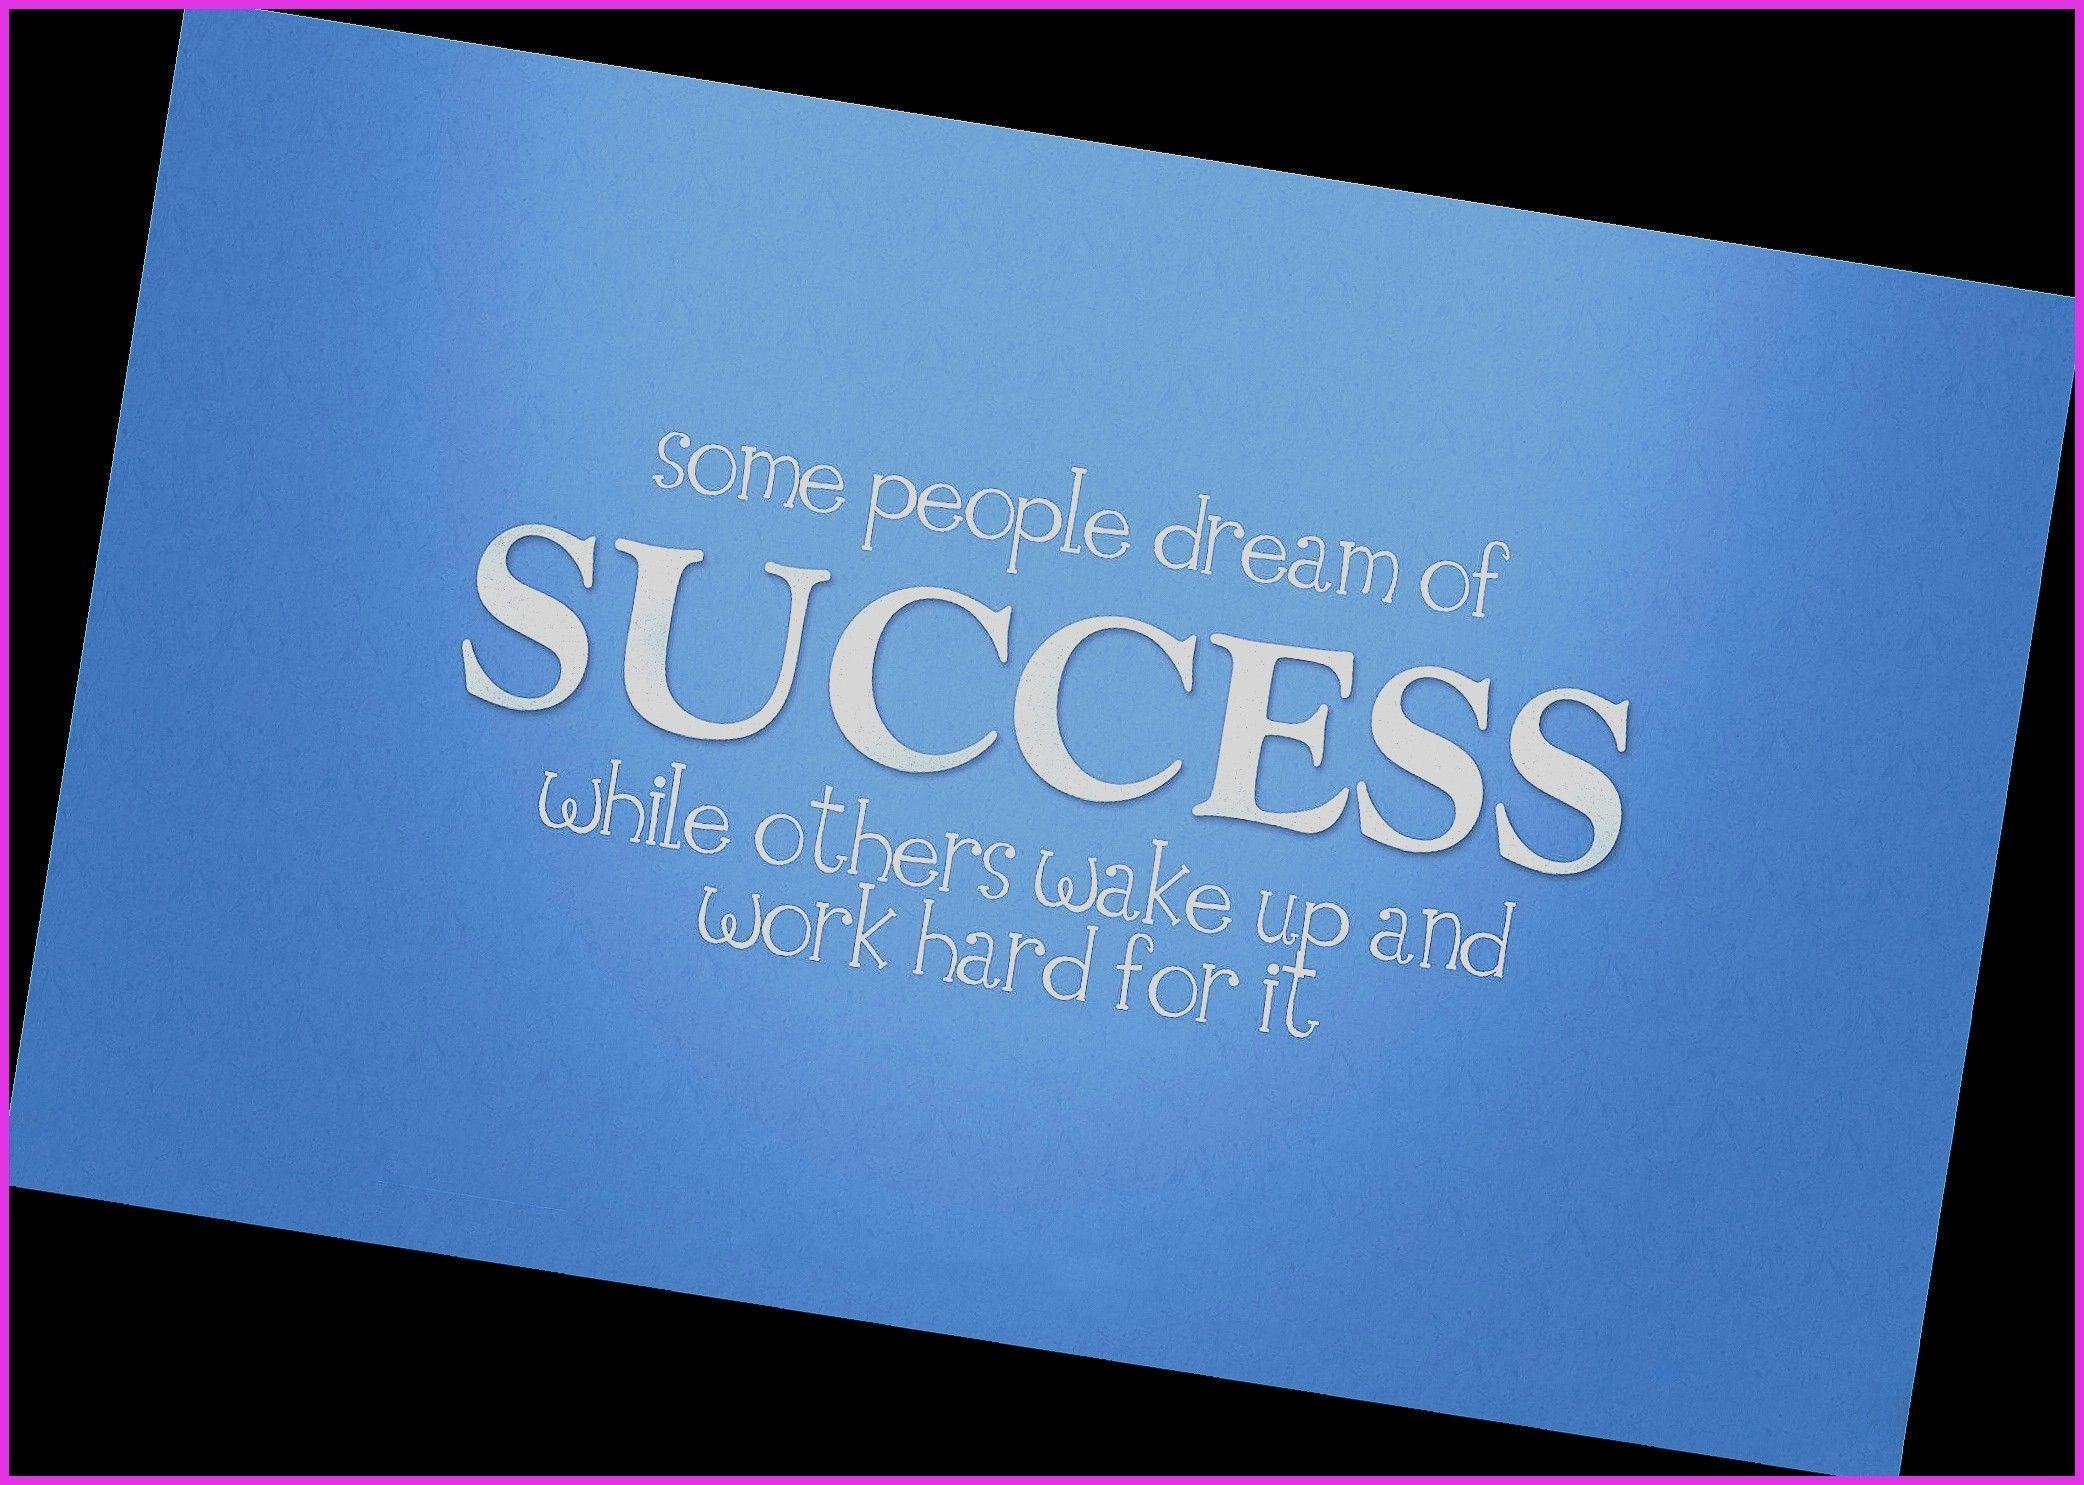 1080p Success Image Hd 2084x1485 Download Hd Wallpaper Wallpapertip